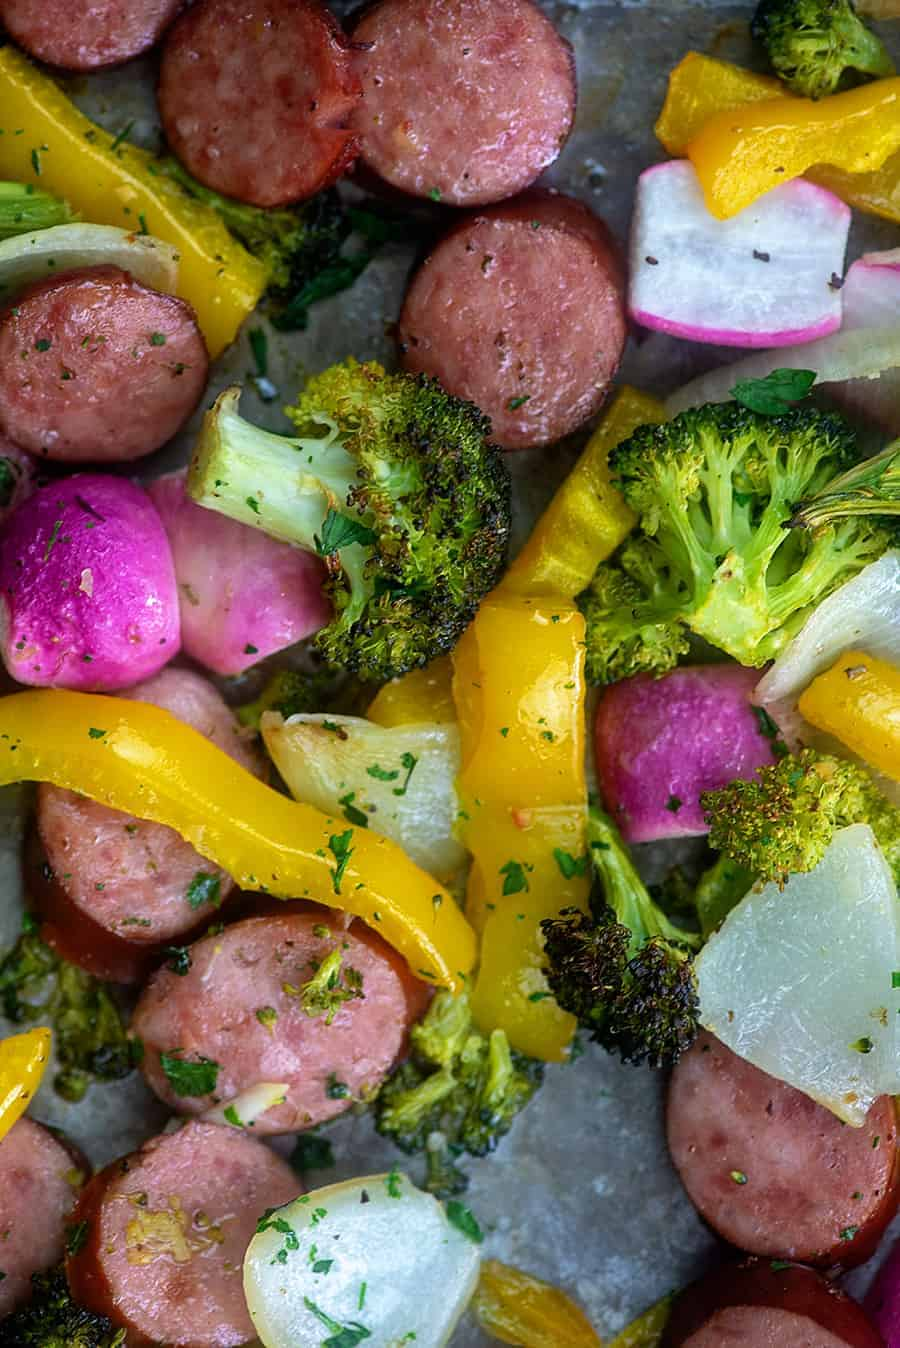 A close up of various vegetables and smoked sausages.